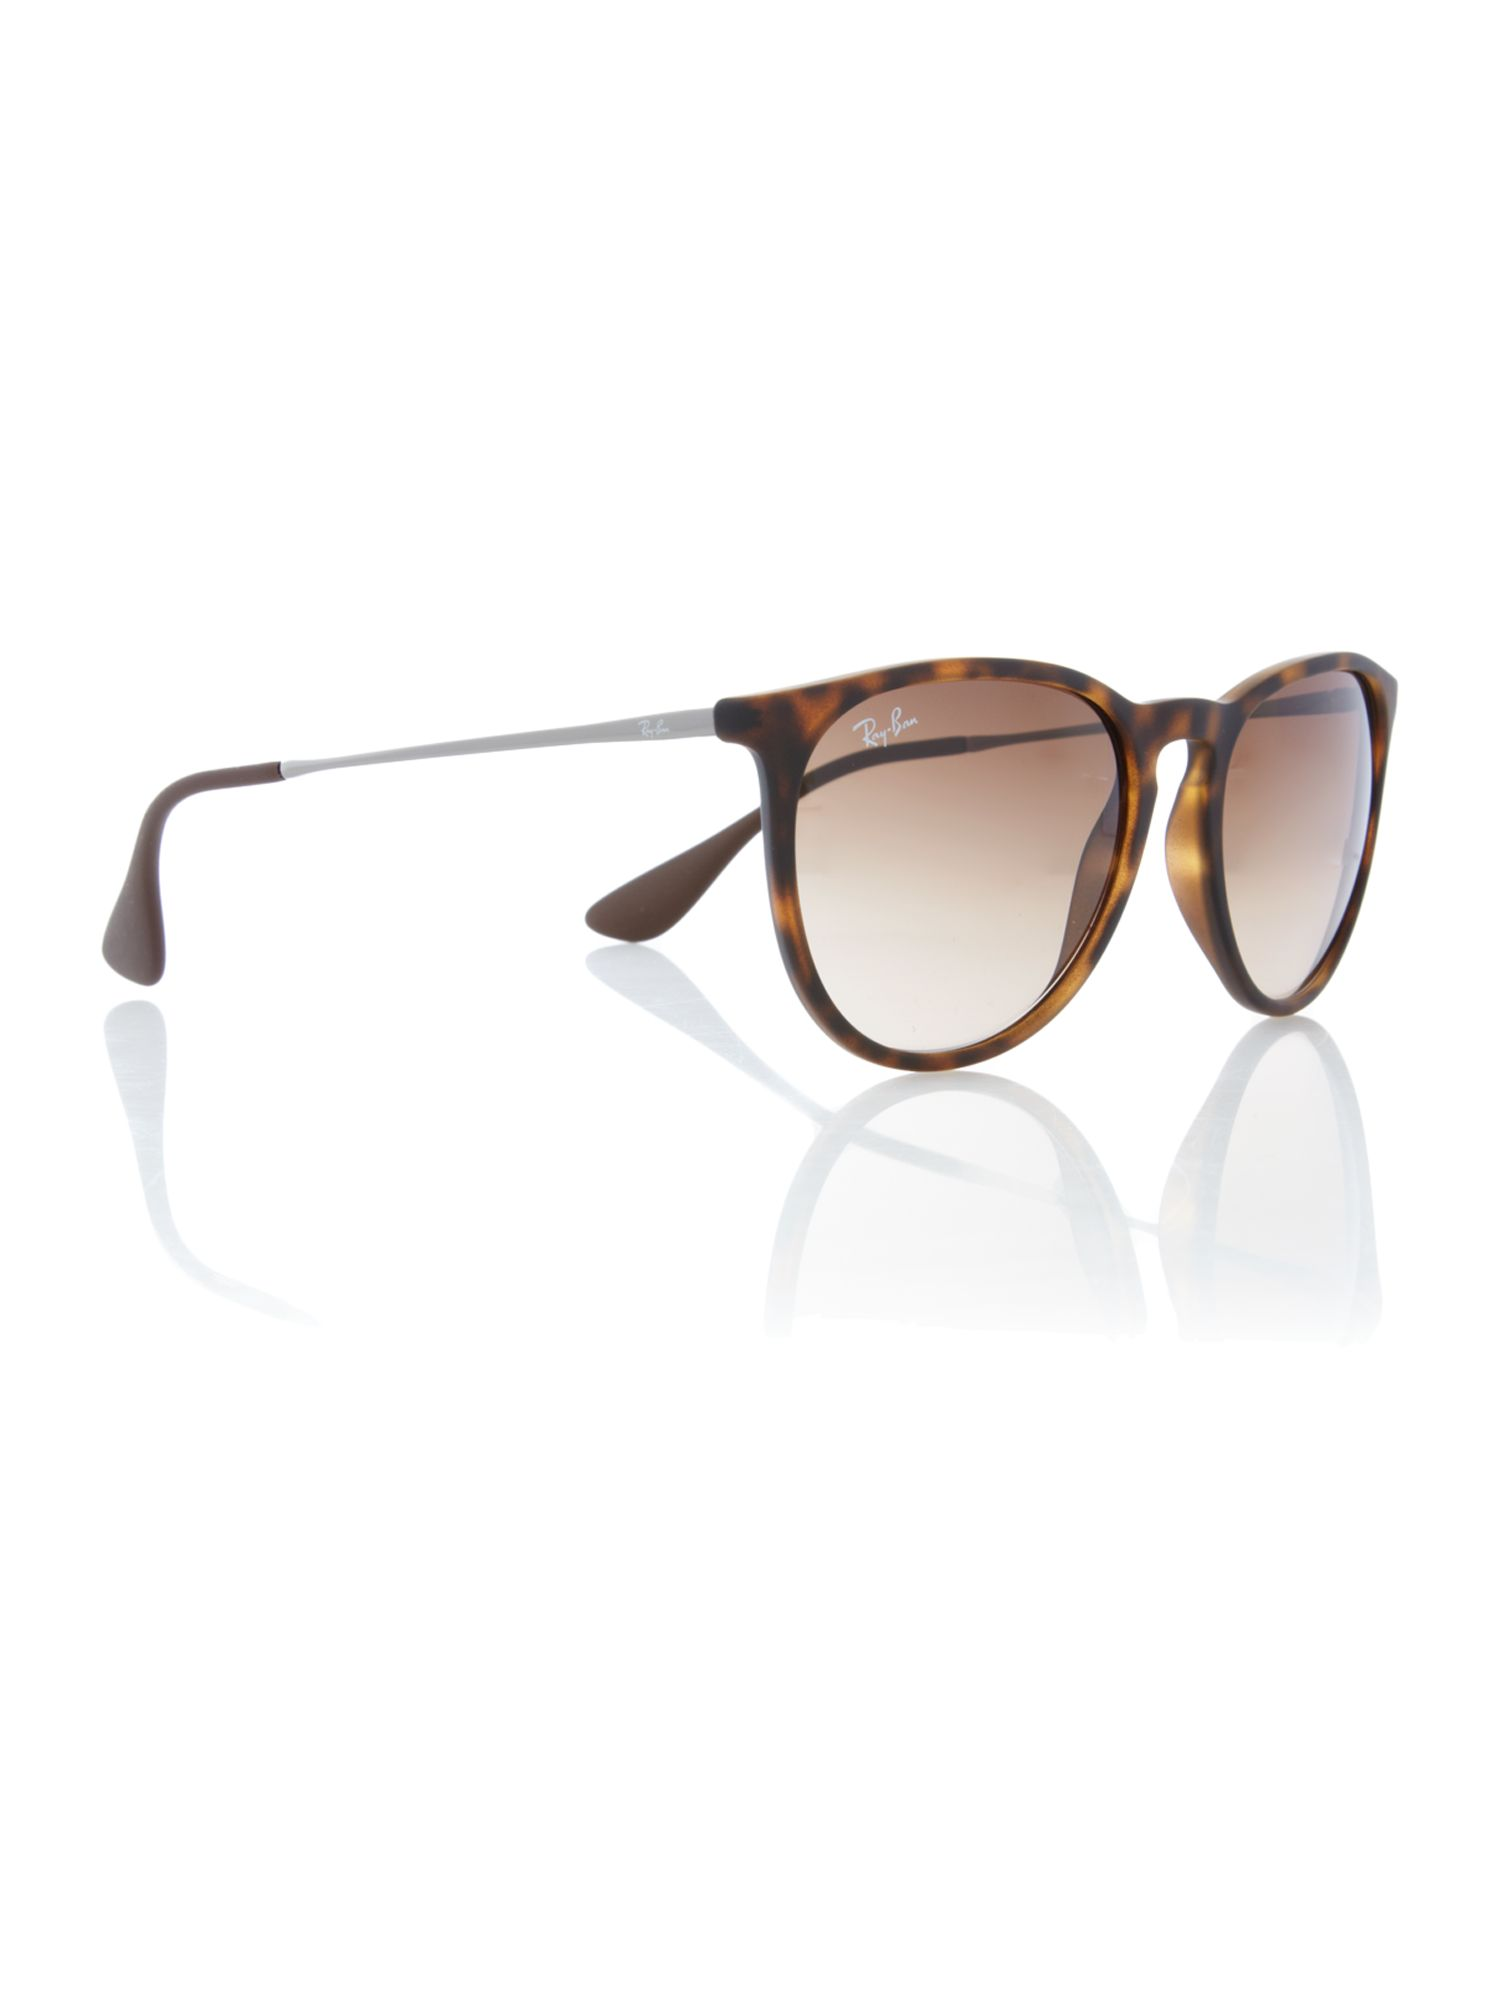 Unisex RB4171 Erika Sunglasses